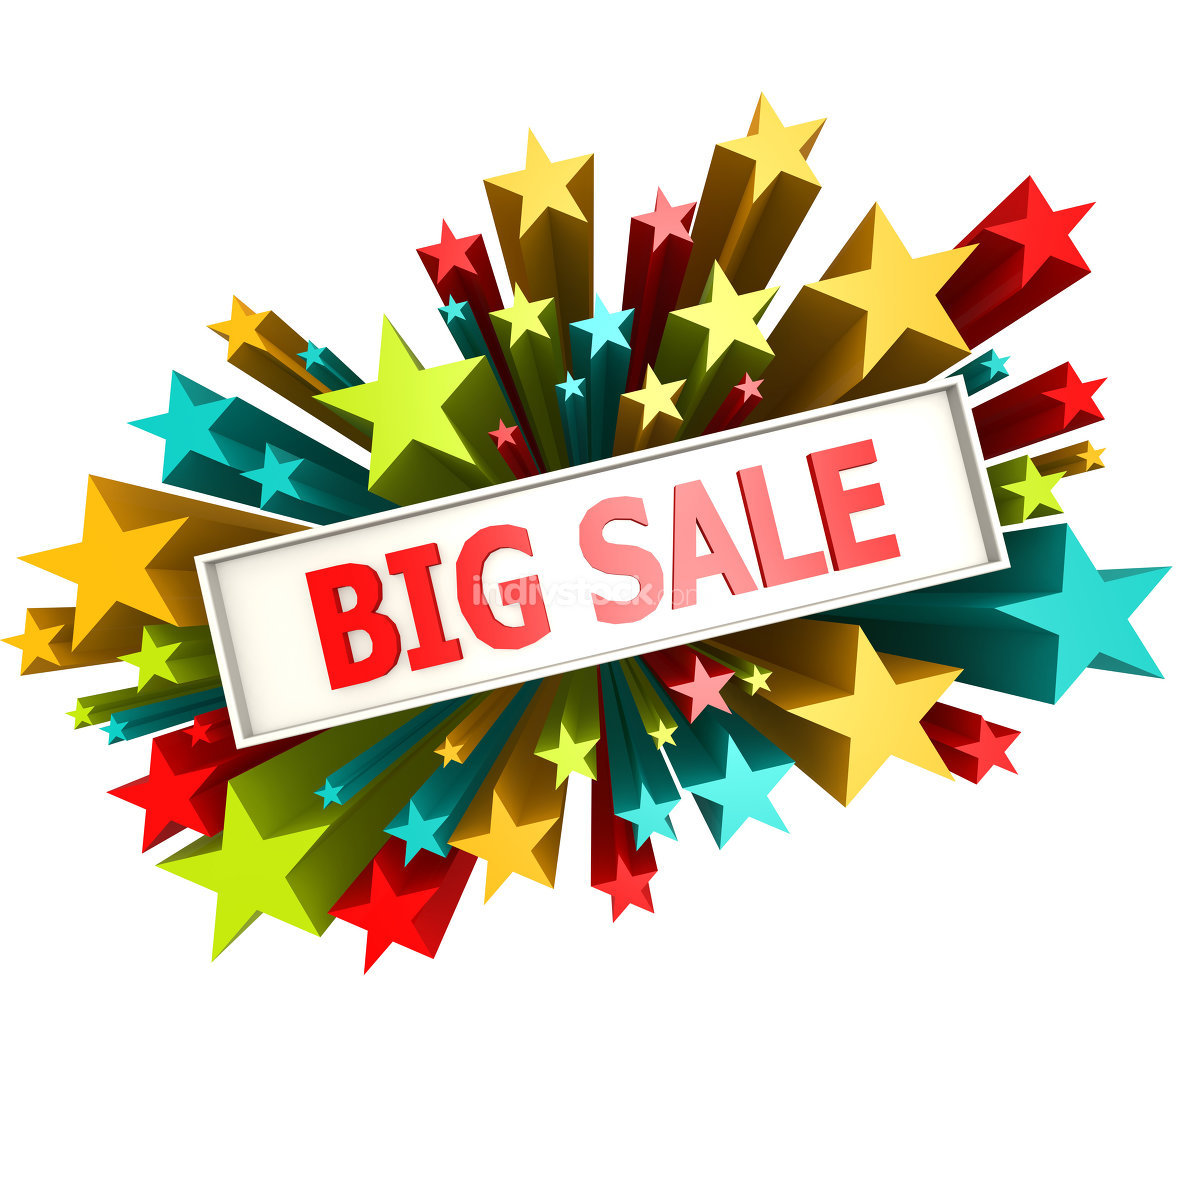 Big sale star banner